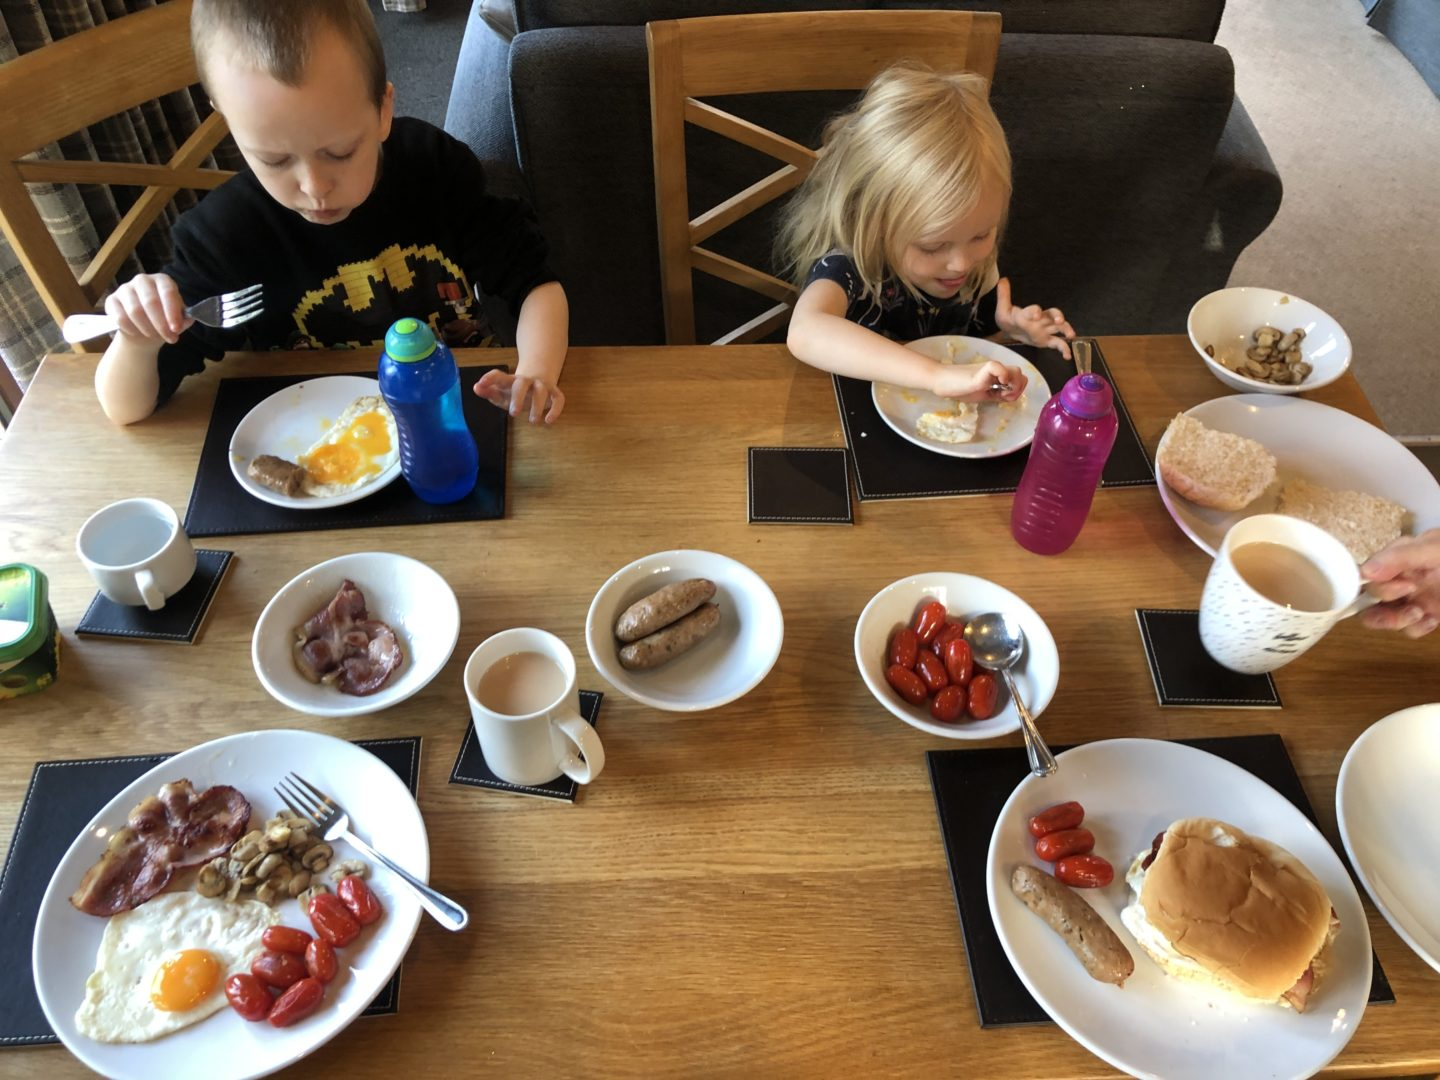 AD: Landal Sandybrook Peak District family review - a relaxing autumnal long weekend break. Kids eating breakfast in the lodge.